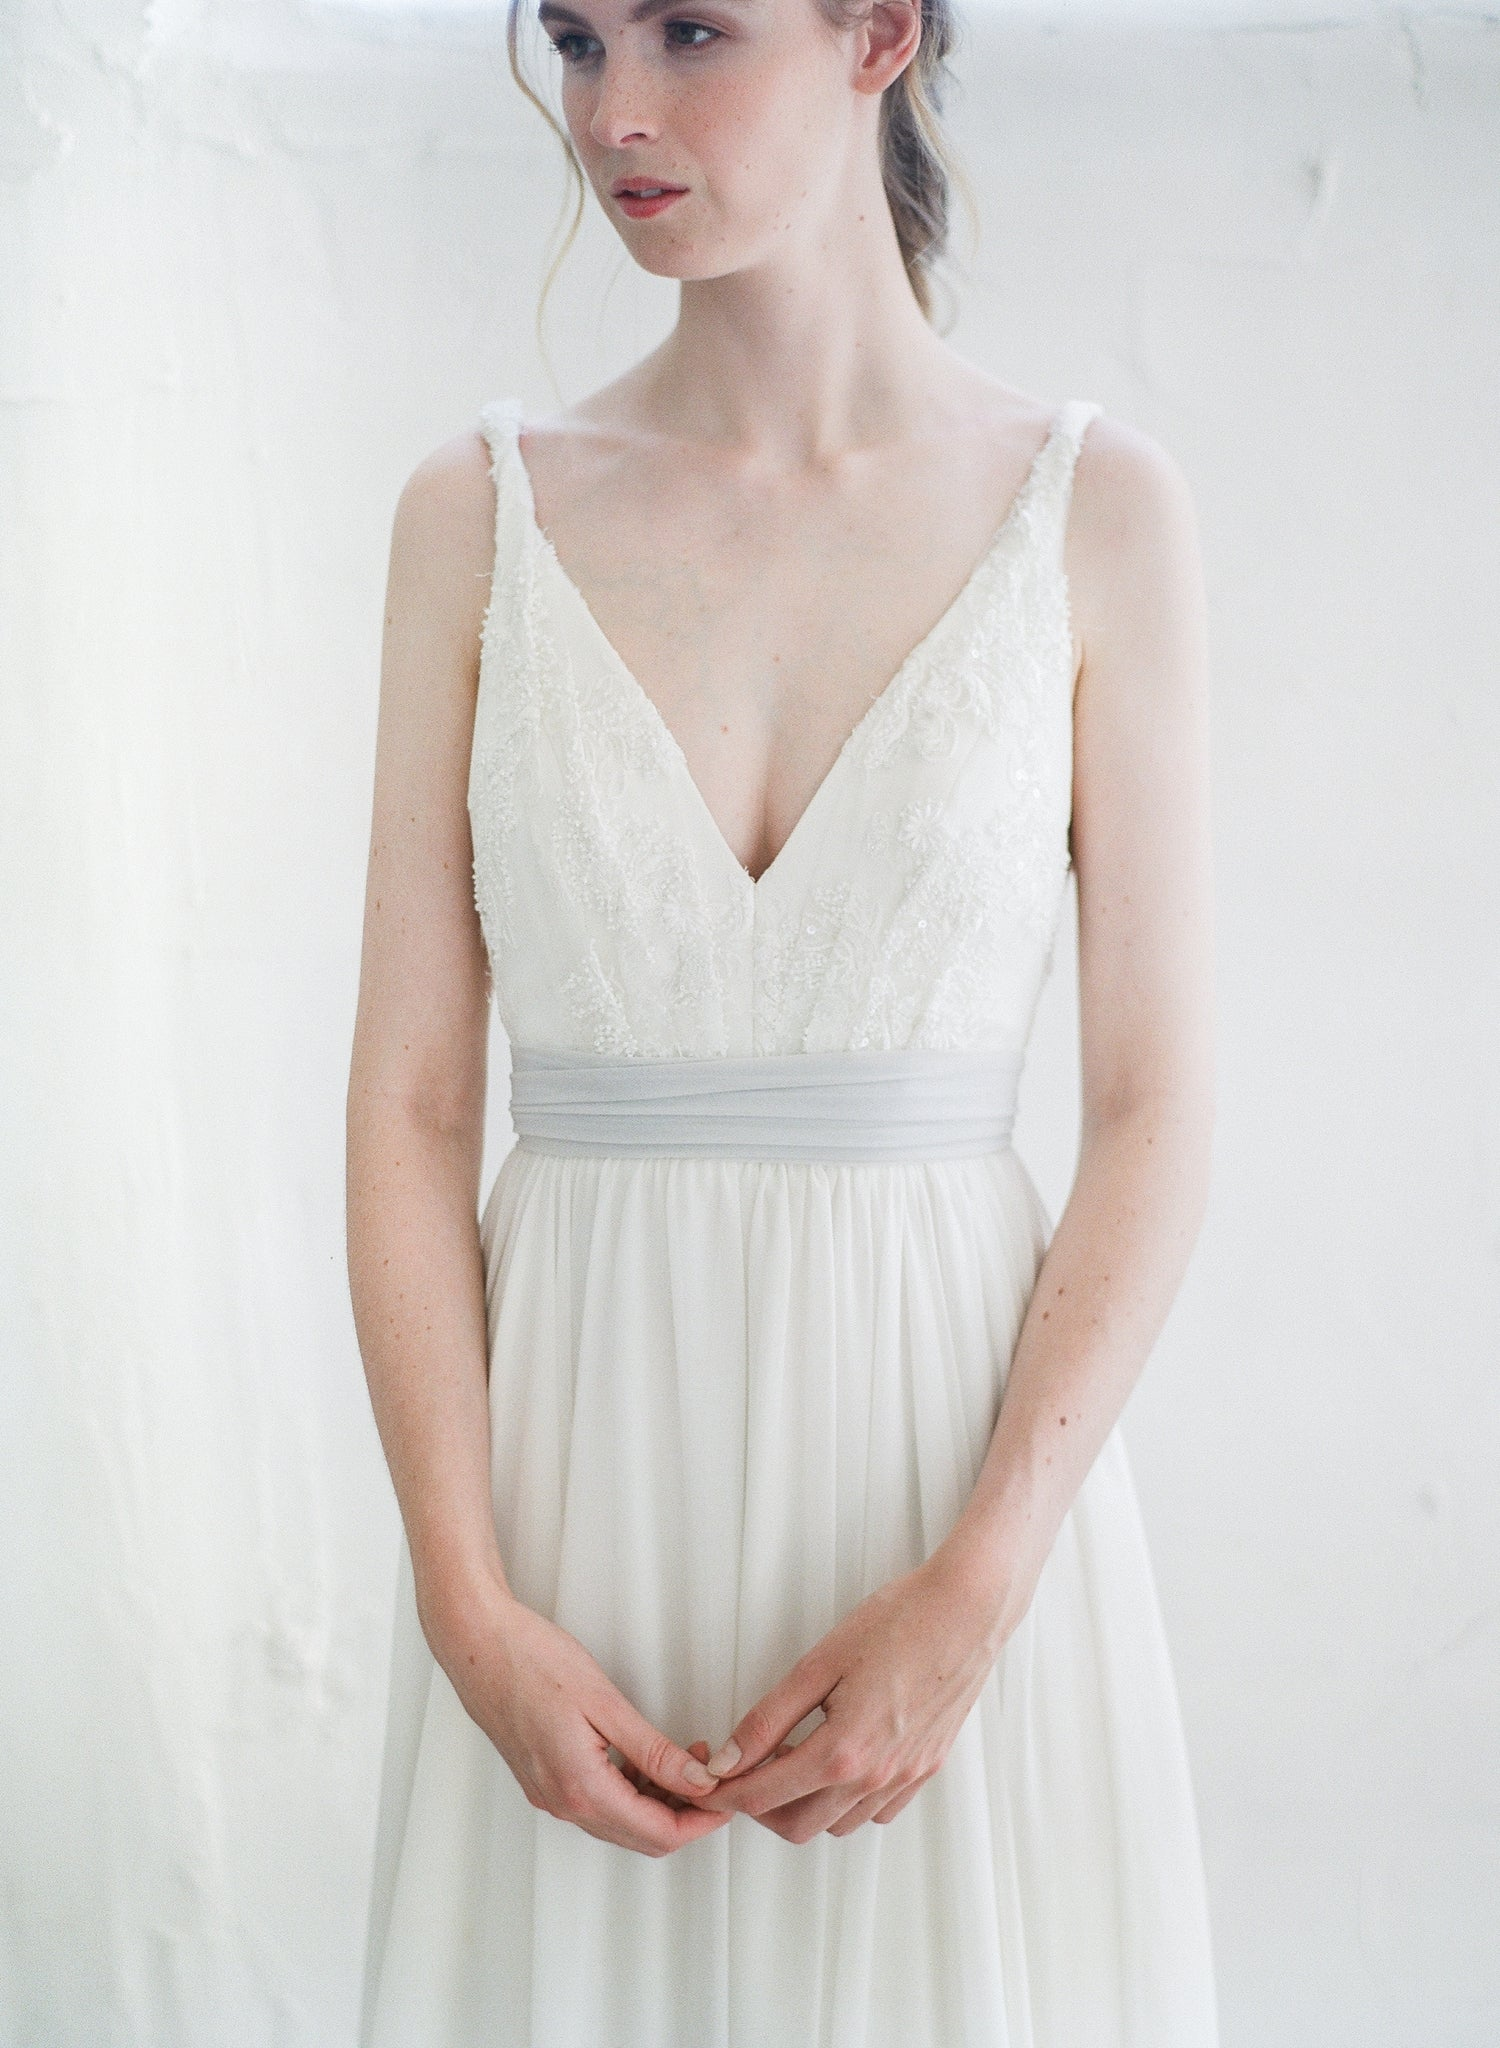 Flowy chiffon dress sash in dove grey